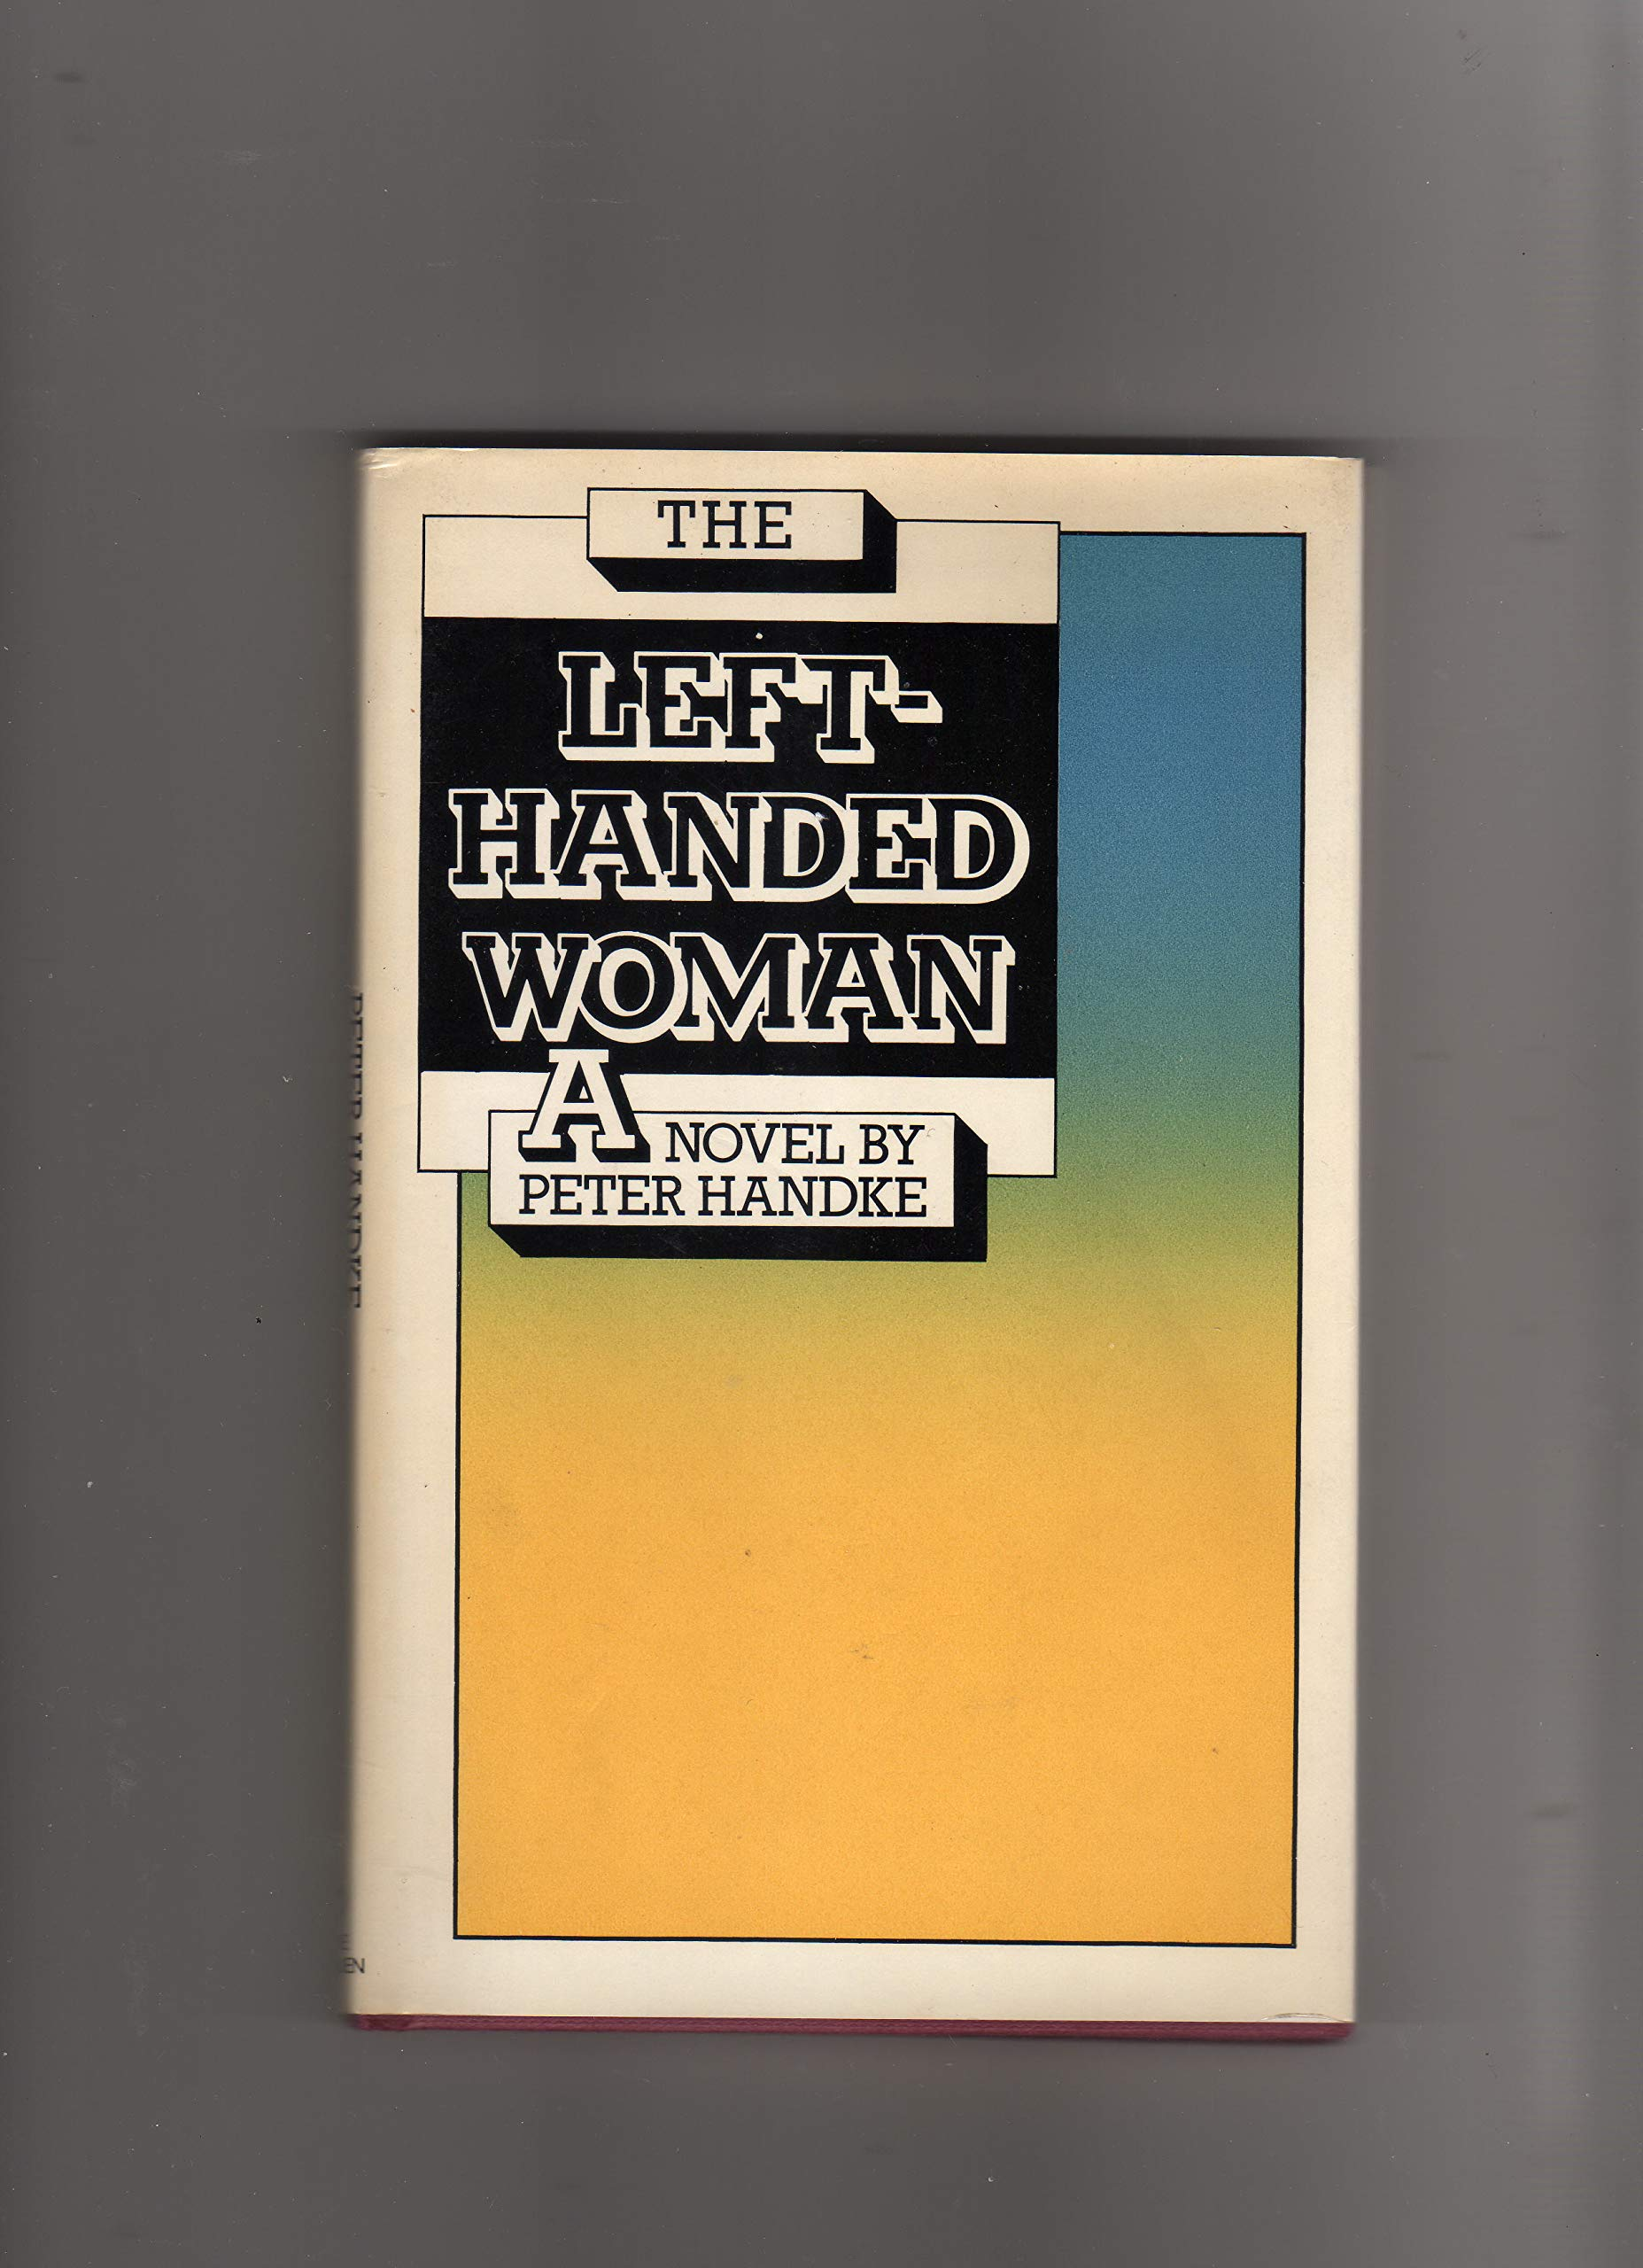 Left-handed Woman (Modern Fiction): Amazon.es: Handke, Peter: Libros en idiomas extranjeros